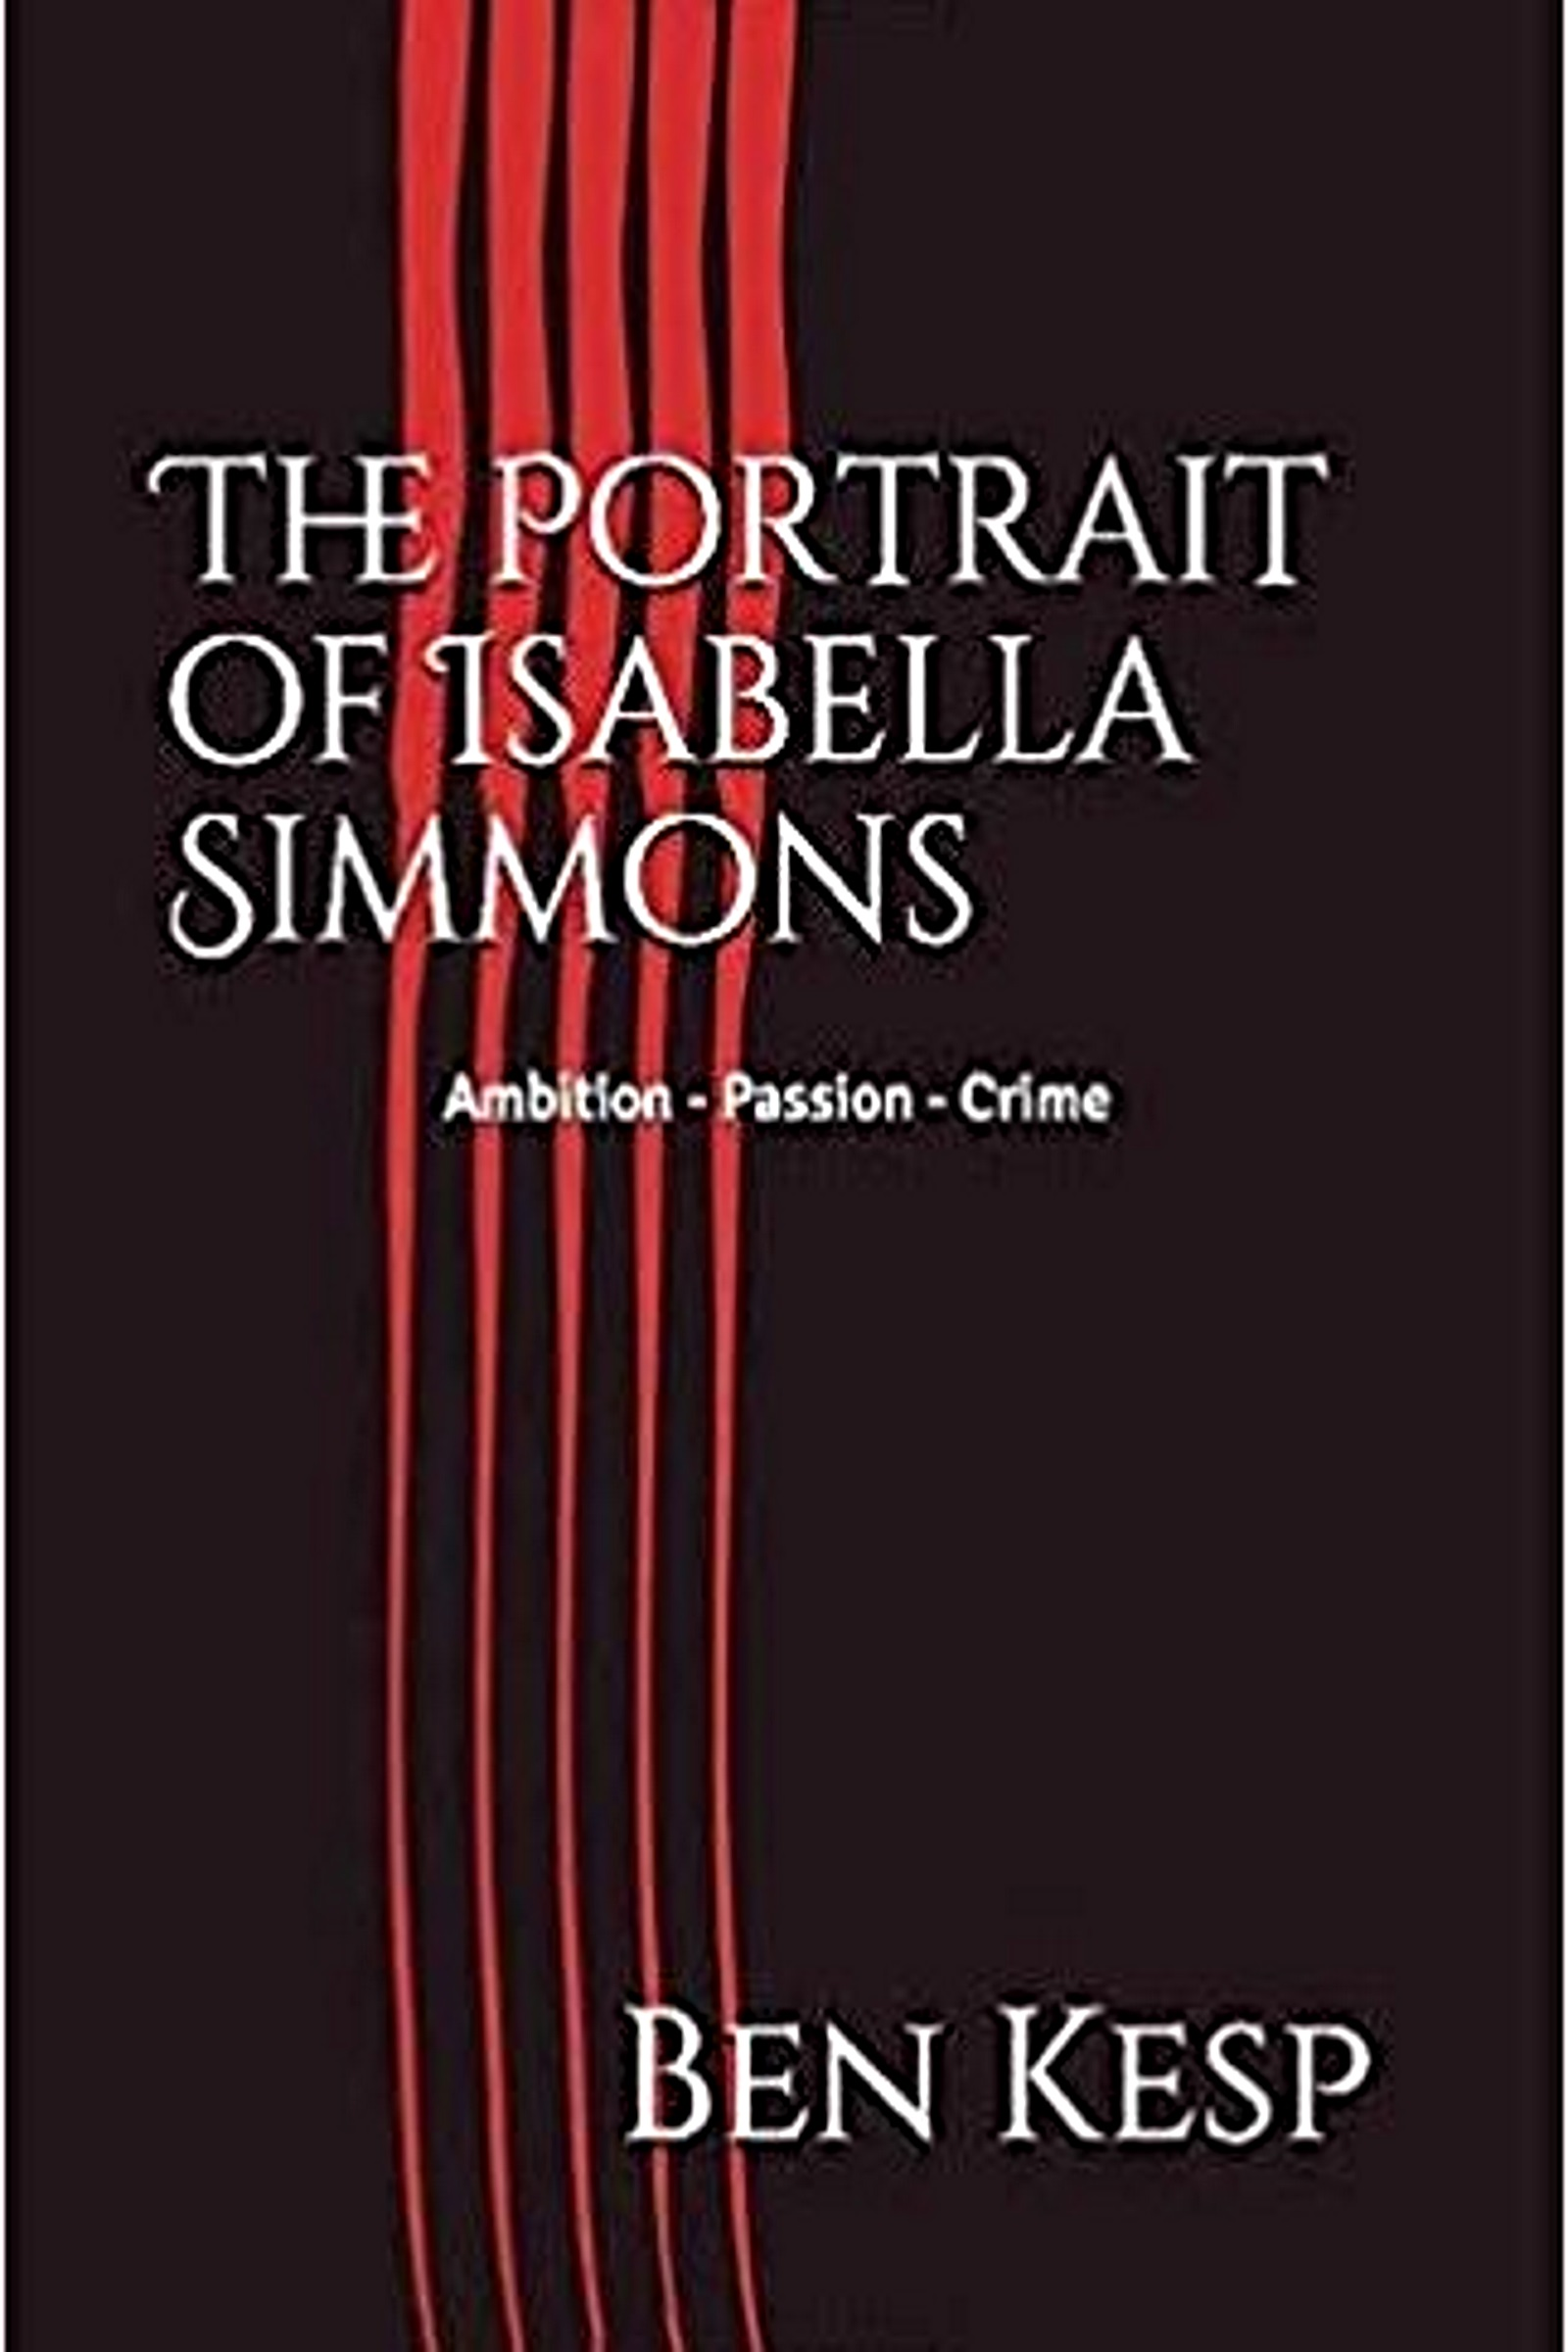 The Portrait of Isabella Simmons